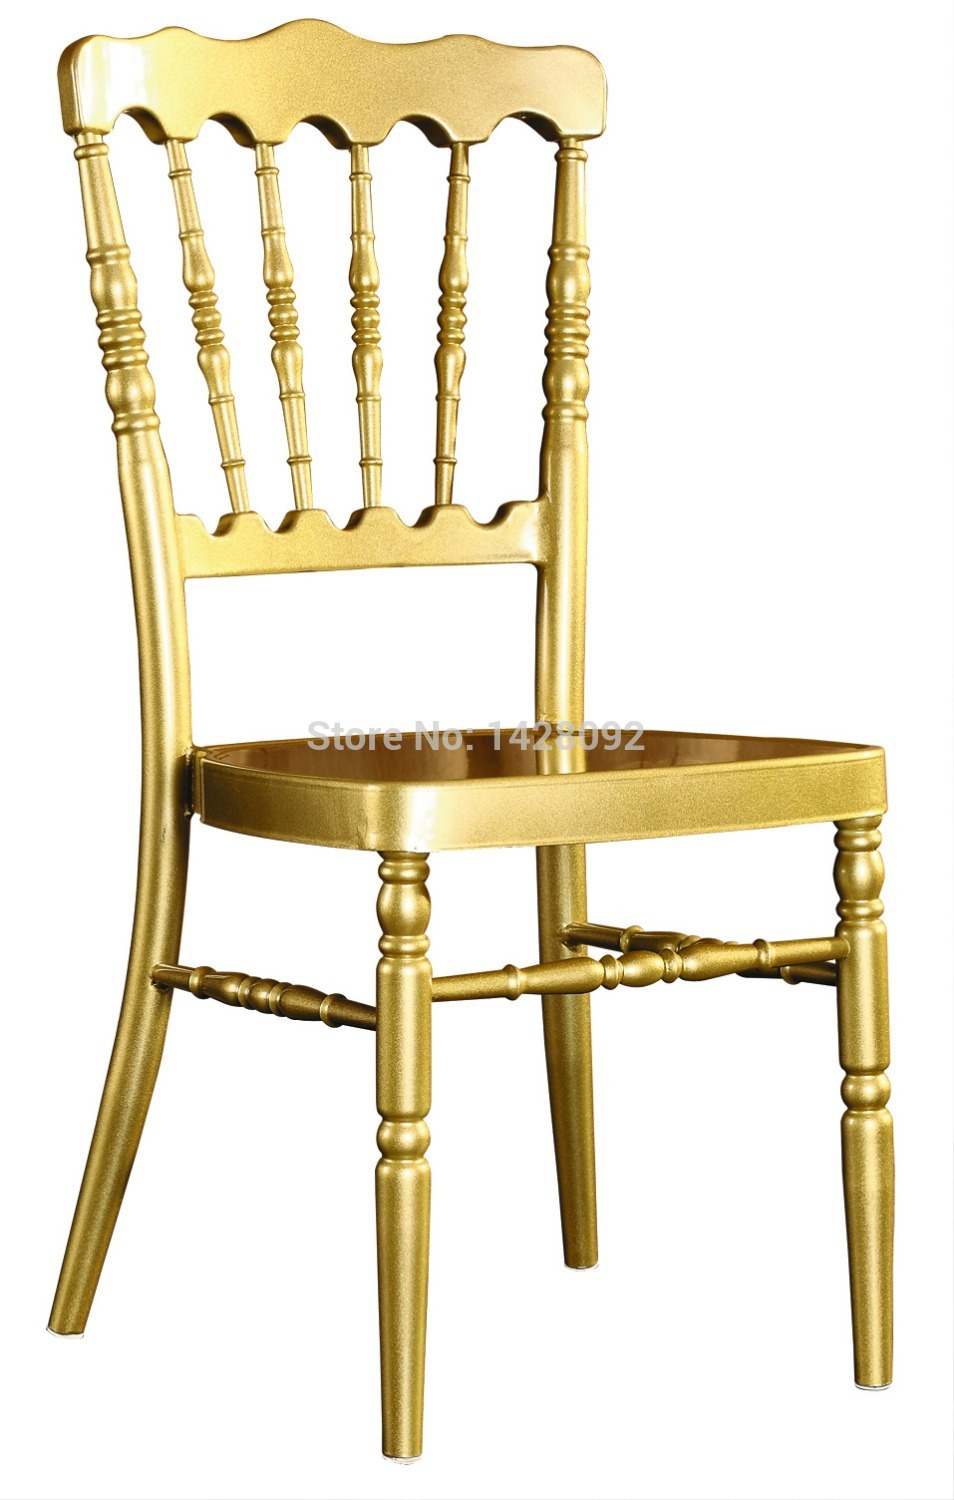 Wholesale Quality Strong Gold Aluminum Napoleon Chair